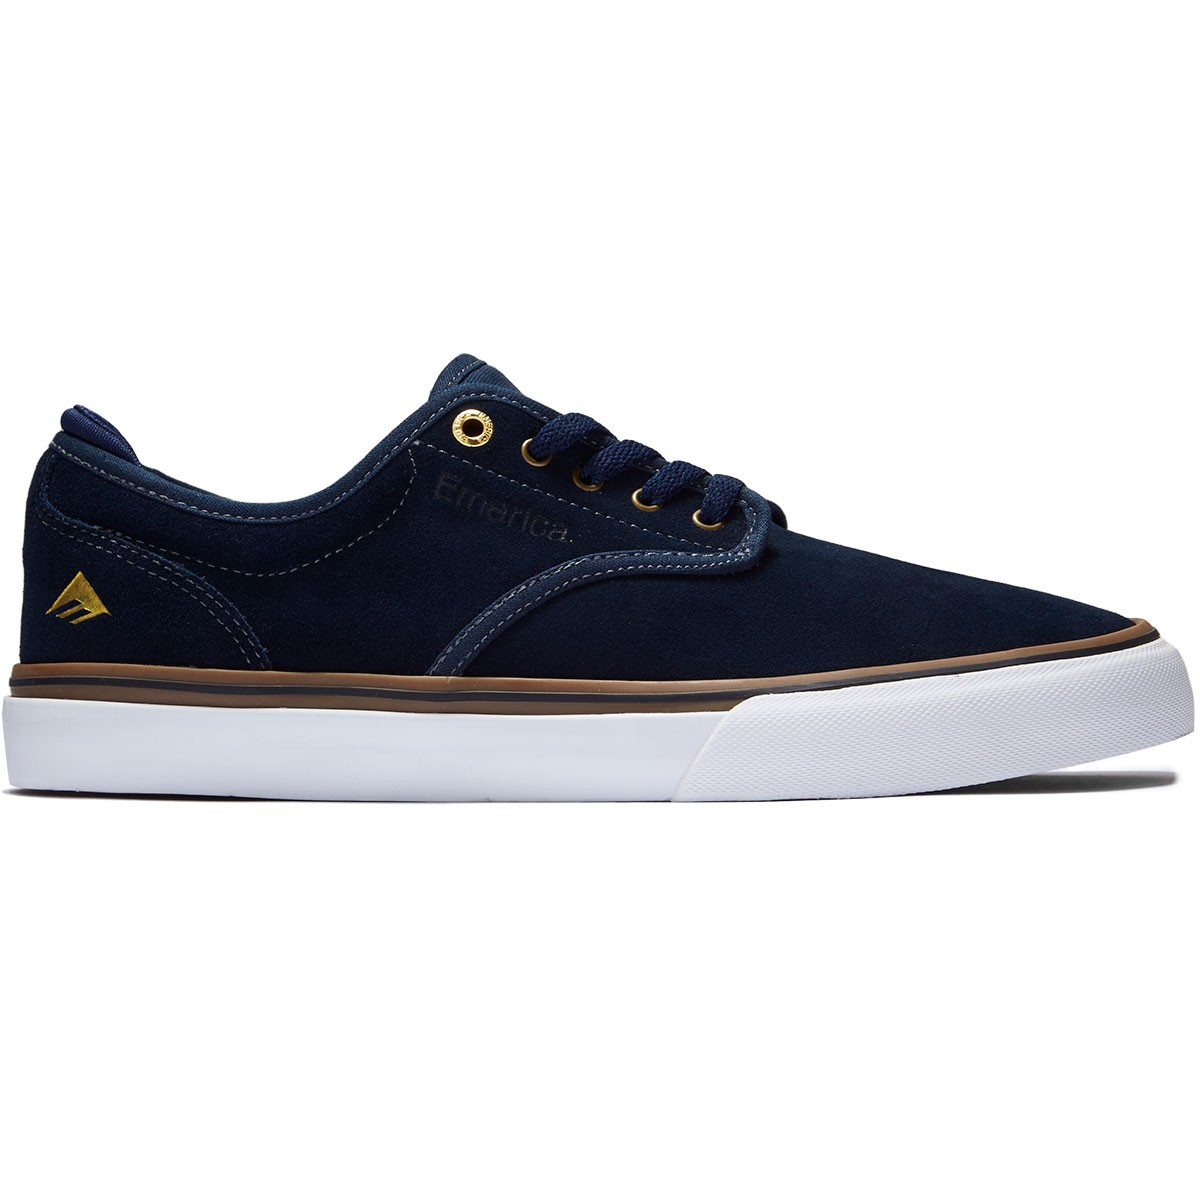 Emerica Shoes Wino G6 Navy Gum White FREE POST New Skateboard Sneakers